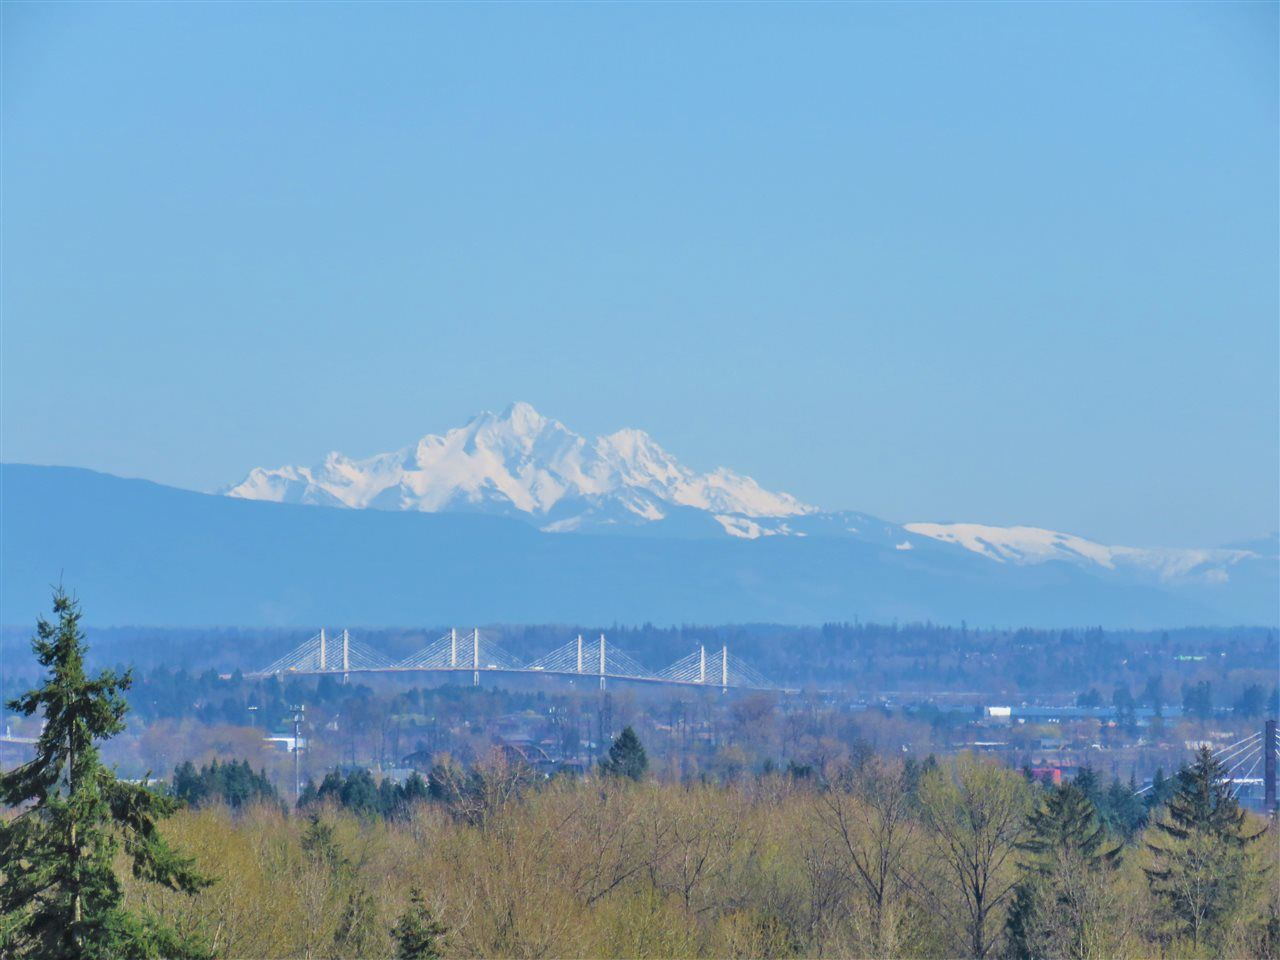 """Main Photo: 1306 3070 GUILDFORD Way in Coquitlam: North Coquitlam Condo for sale in """"LAKESIDE TERRACE"""" : MLS®# R2583933"""